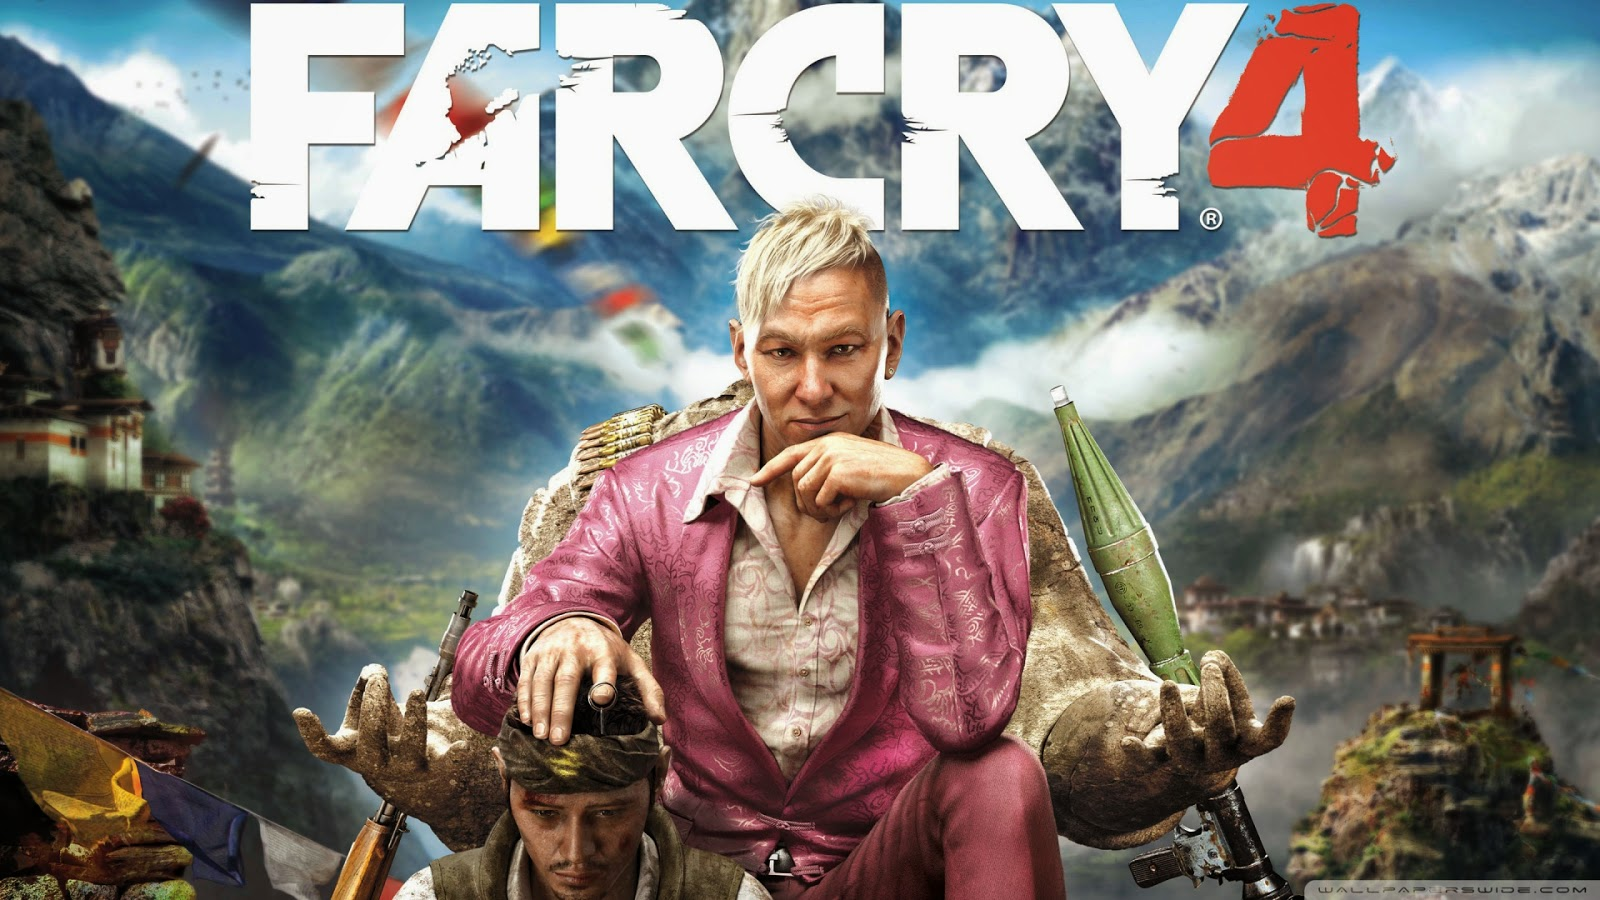 farcry4 torrent